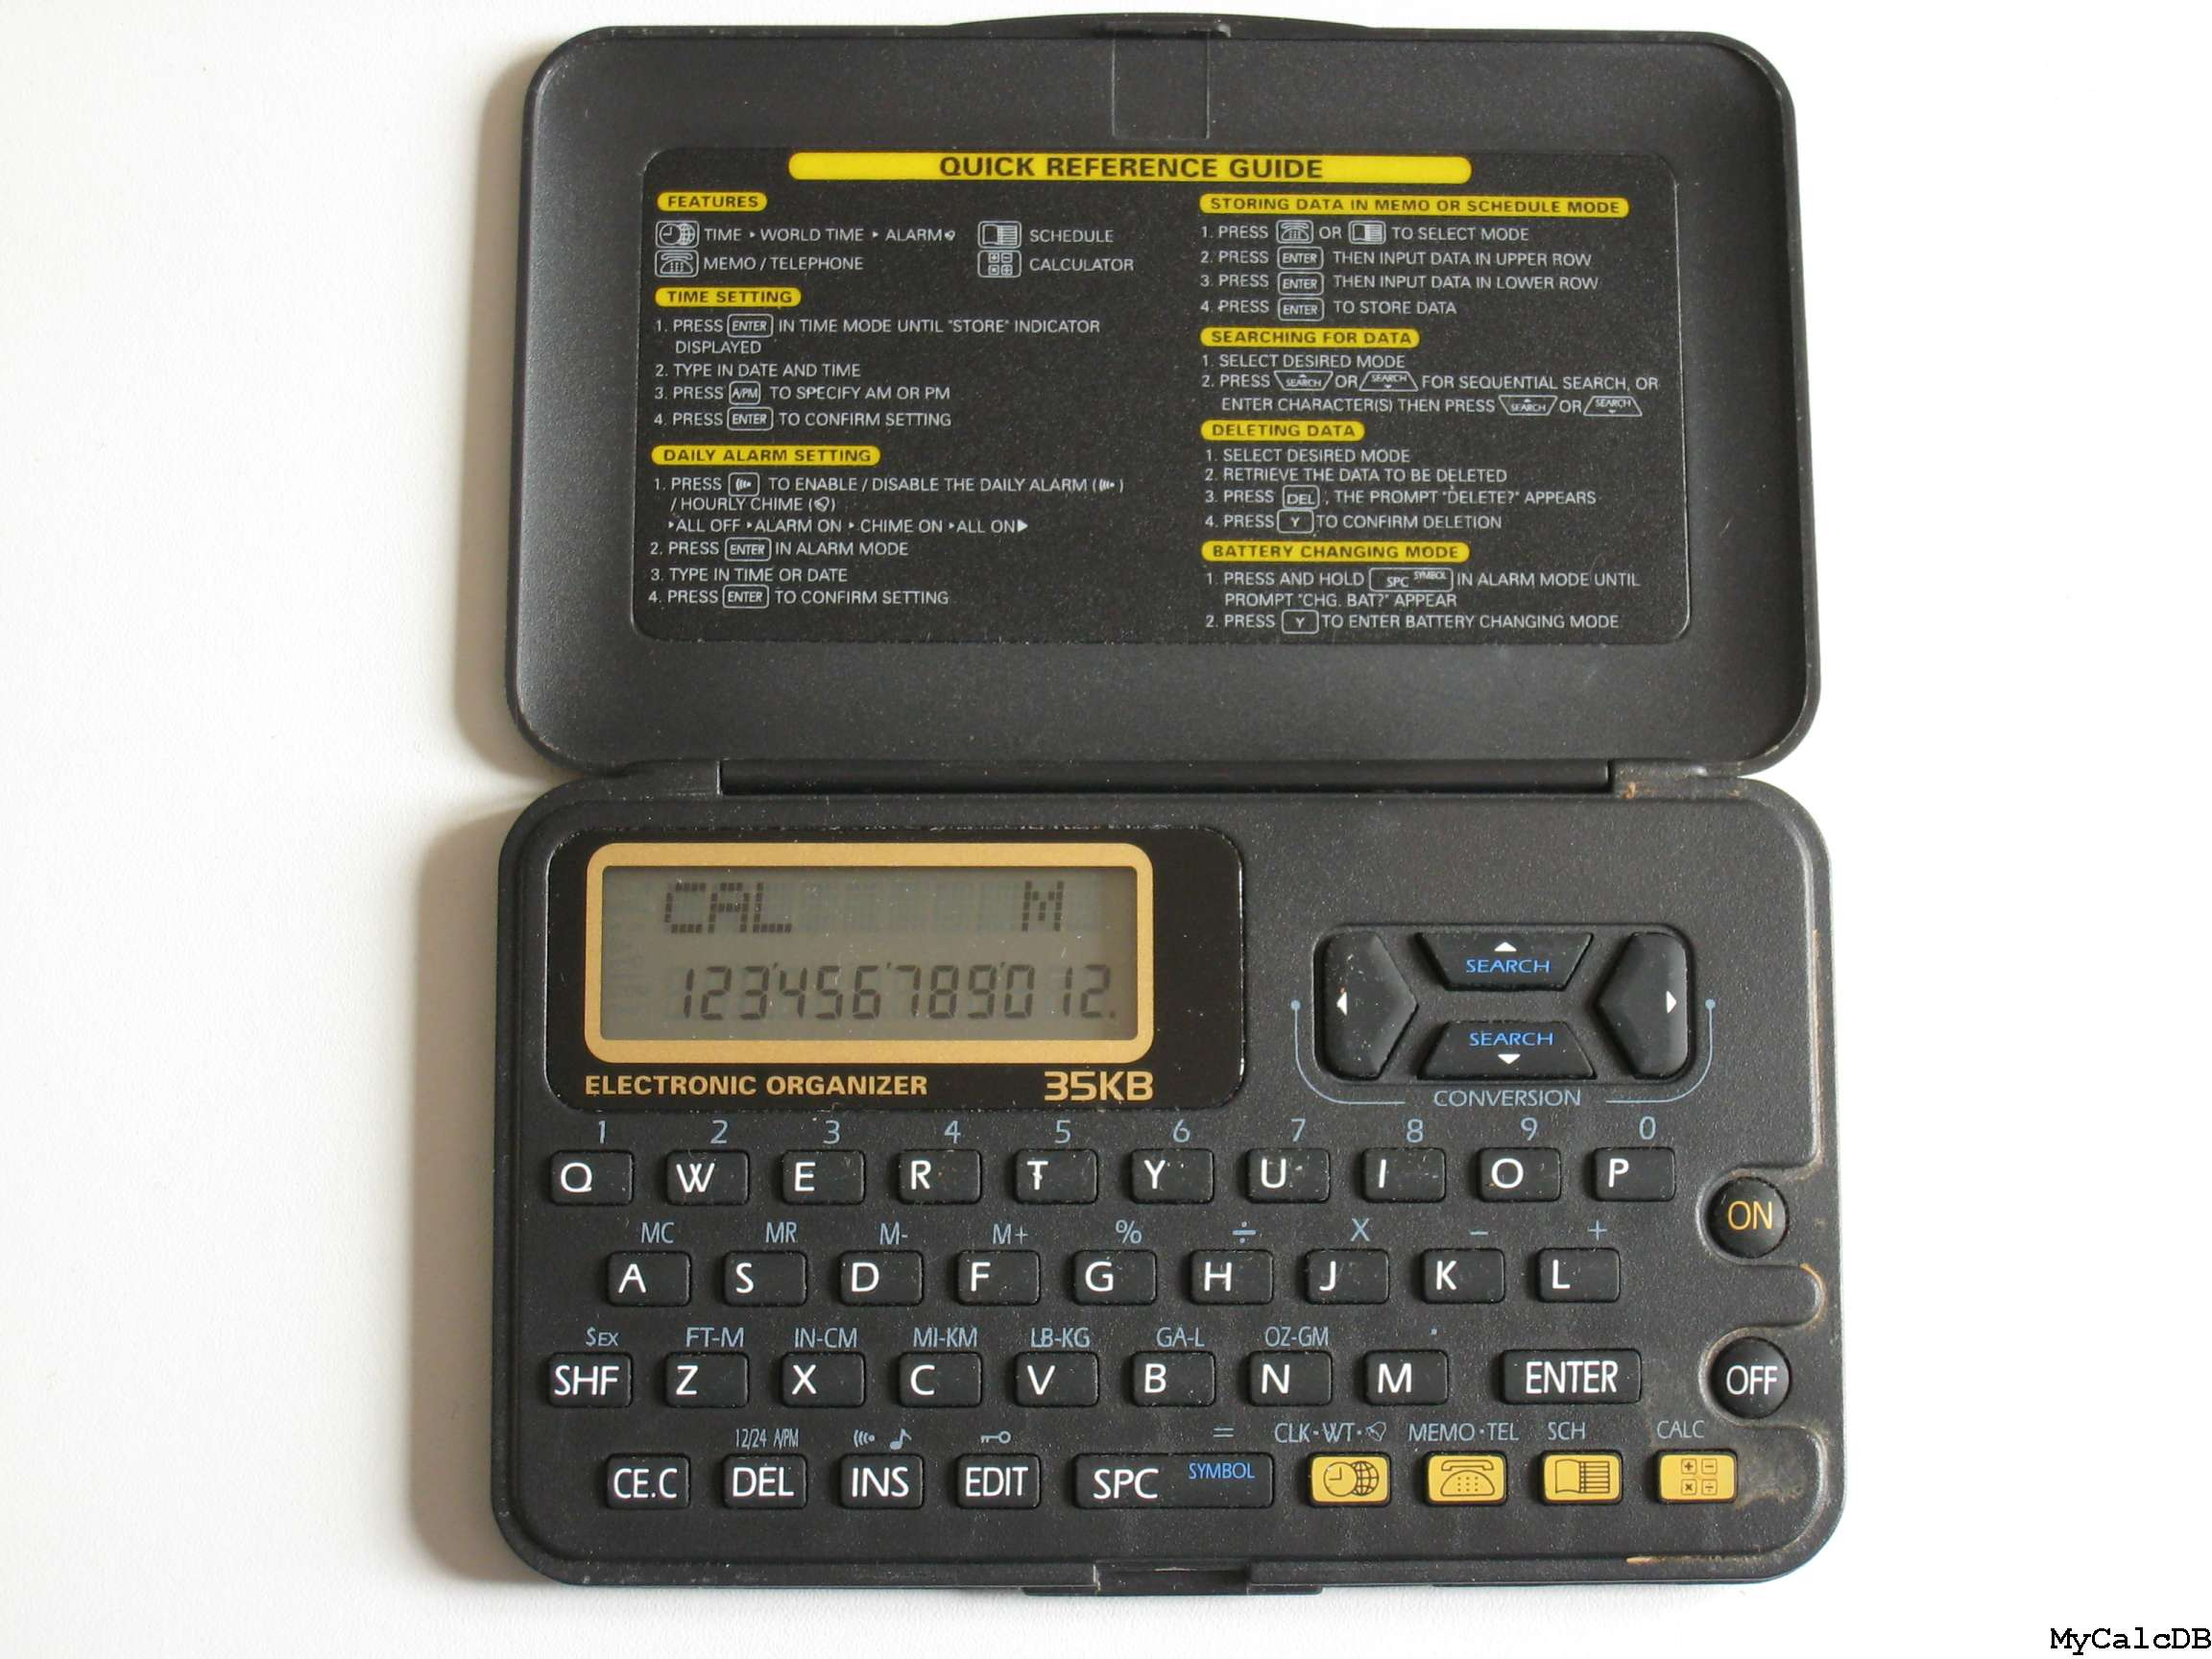 No Brand name ELECTRONIC ORGANIZER 35KB